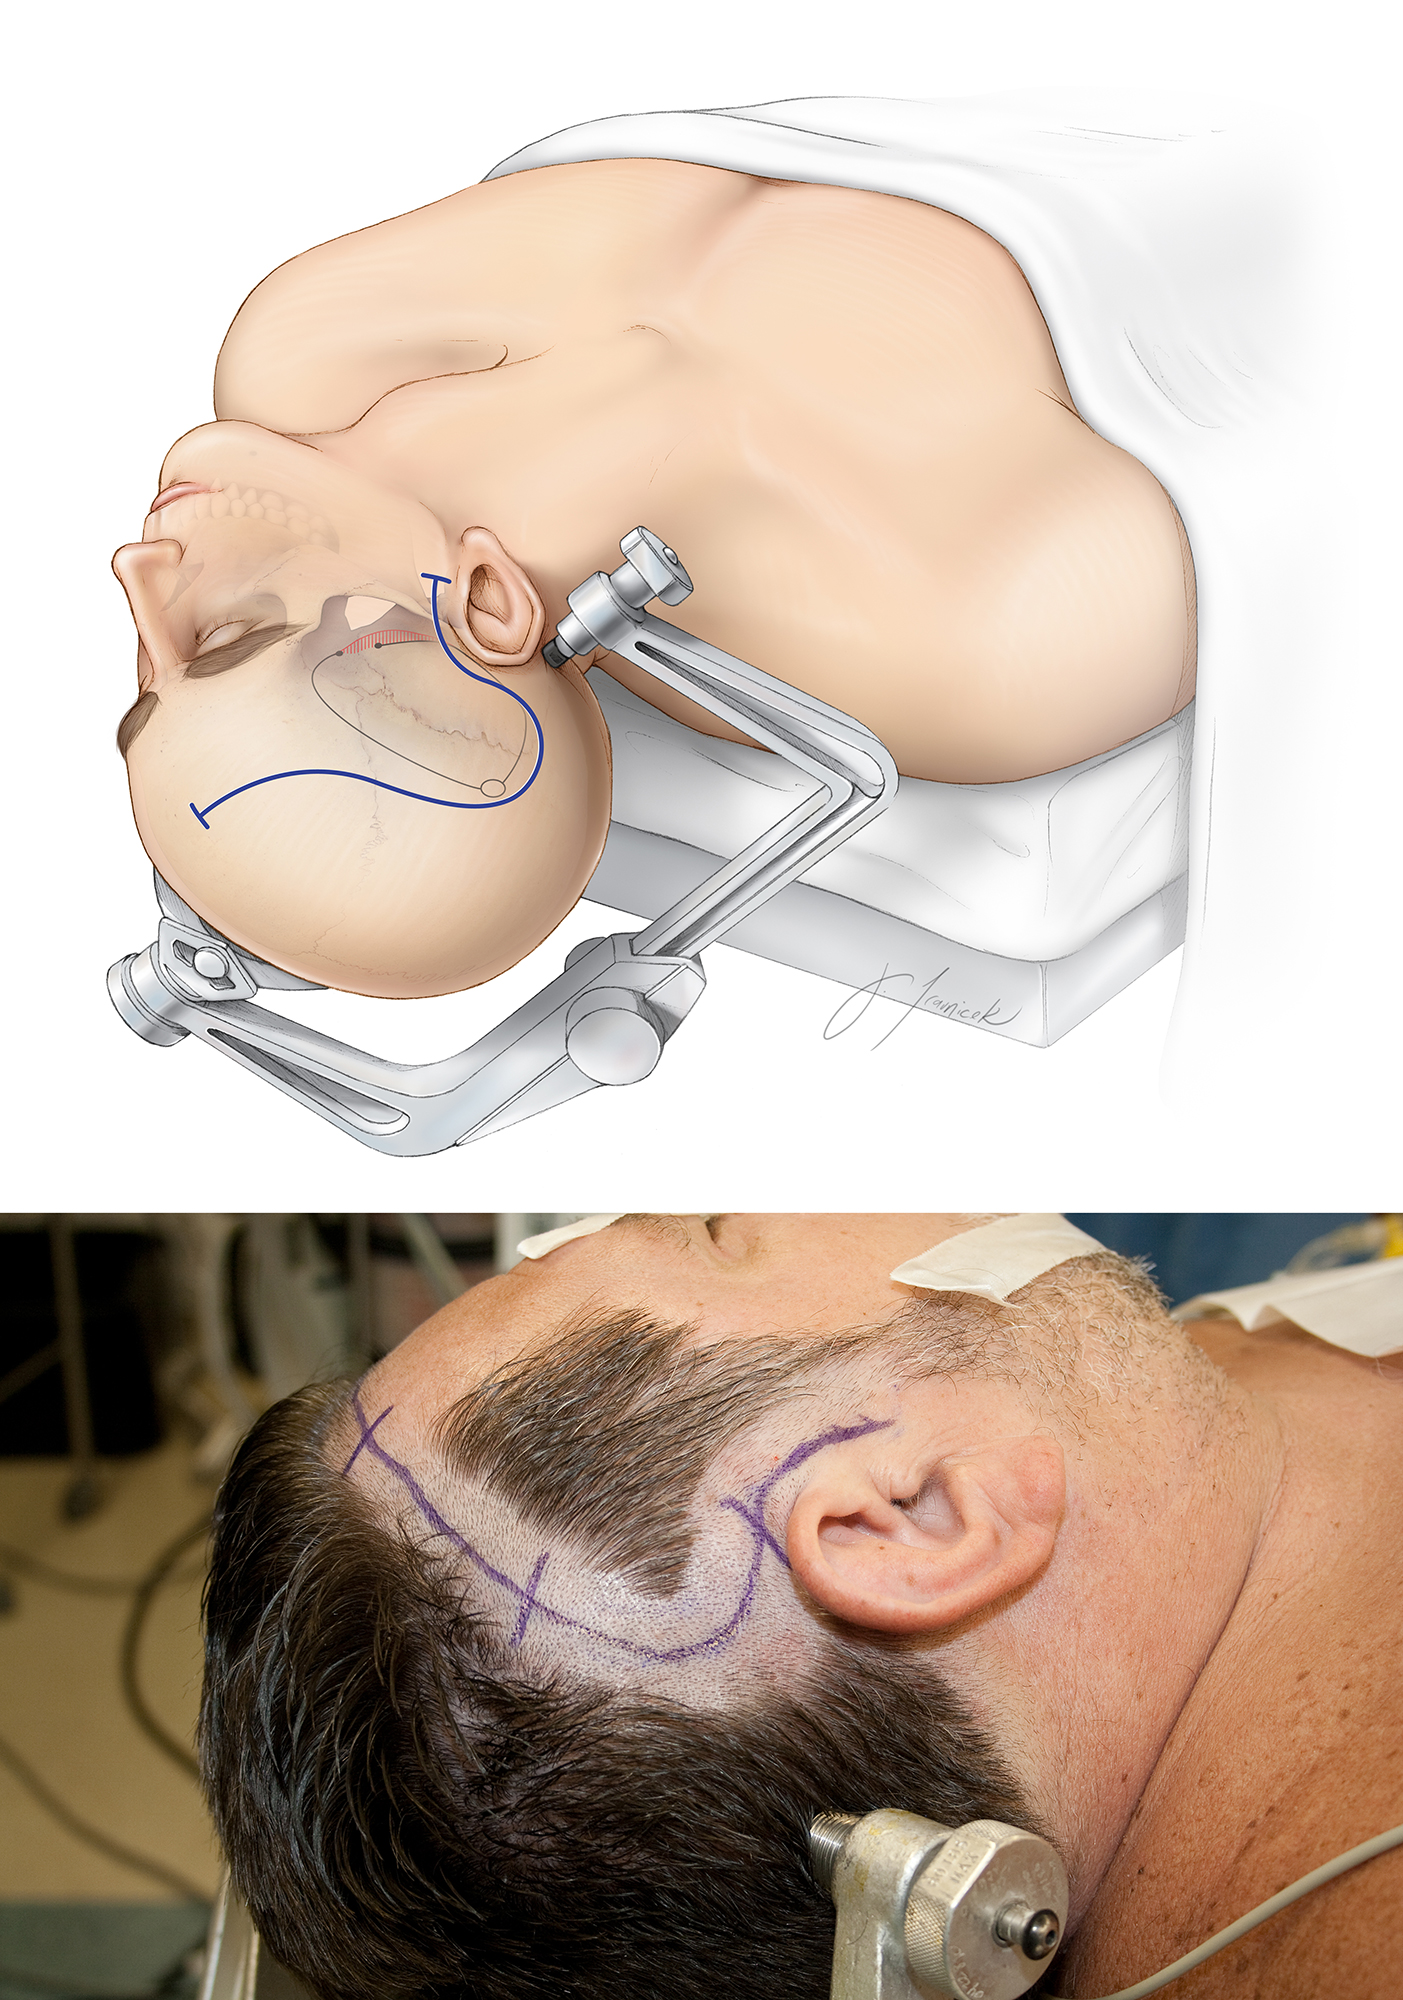 Figure 7: The patient's head is markedly extended toward the ipsilateral shoulder to flatten the long axis of the hippocampus. This head position is imperative because it provides the surgeon direct visualization through the temporal horn and along the axis of the hippocampus during intraventricular dissection and medial hippocampal disconnection. A reverse question mark incision is used for exposure (shown in blue). The incision begins near the zygoma and extends posteriorly behind the ear just in front of the mastoid vertex line, then curves anteriorly just above the insertion line of the temporalis muscle (superior temporal line). I mobilize the temporalis muscle flap to identify the root of zygoma. It is important to remember that this craniotomy aims to predominantly expose the temporal lobe and not the frontal lobe. The outline of the craniotomy is marked.